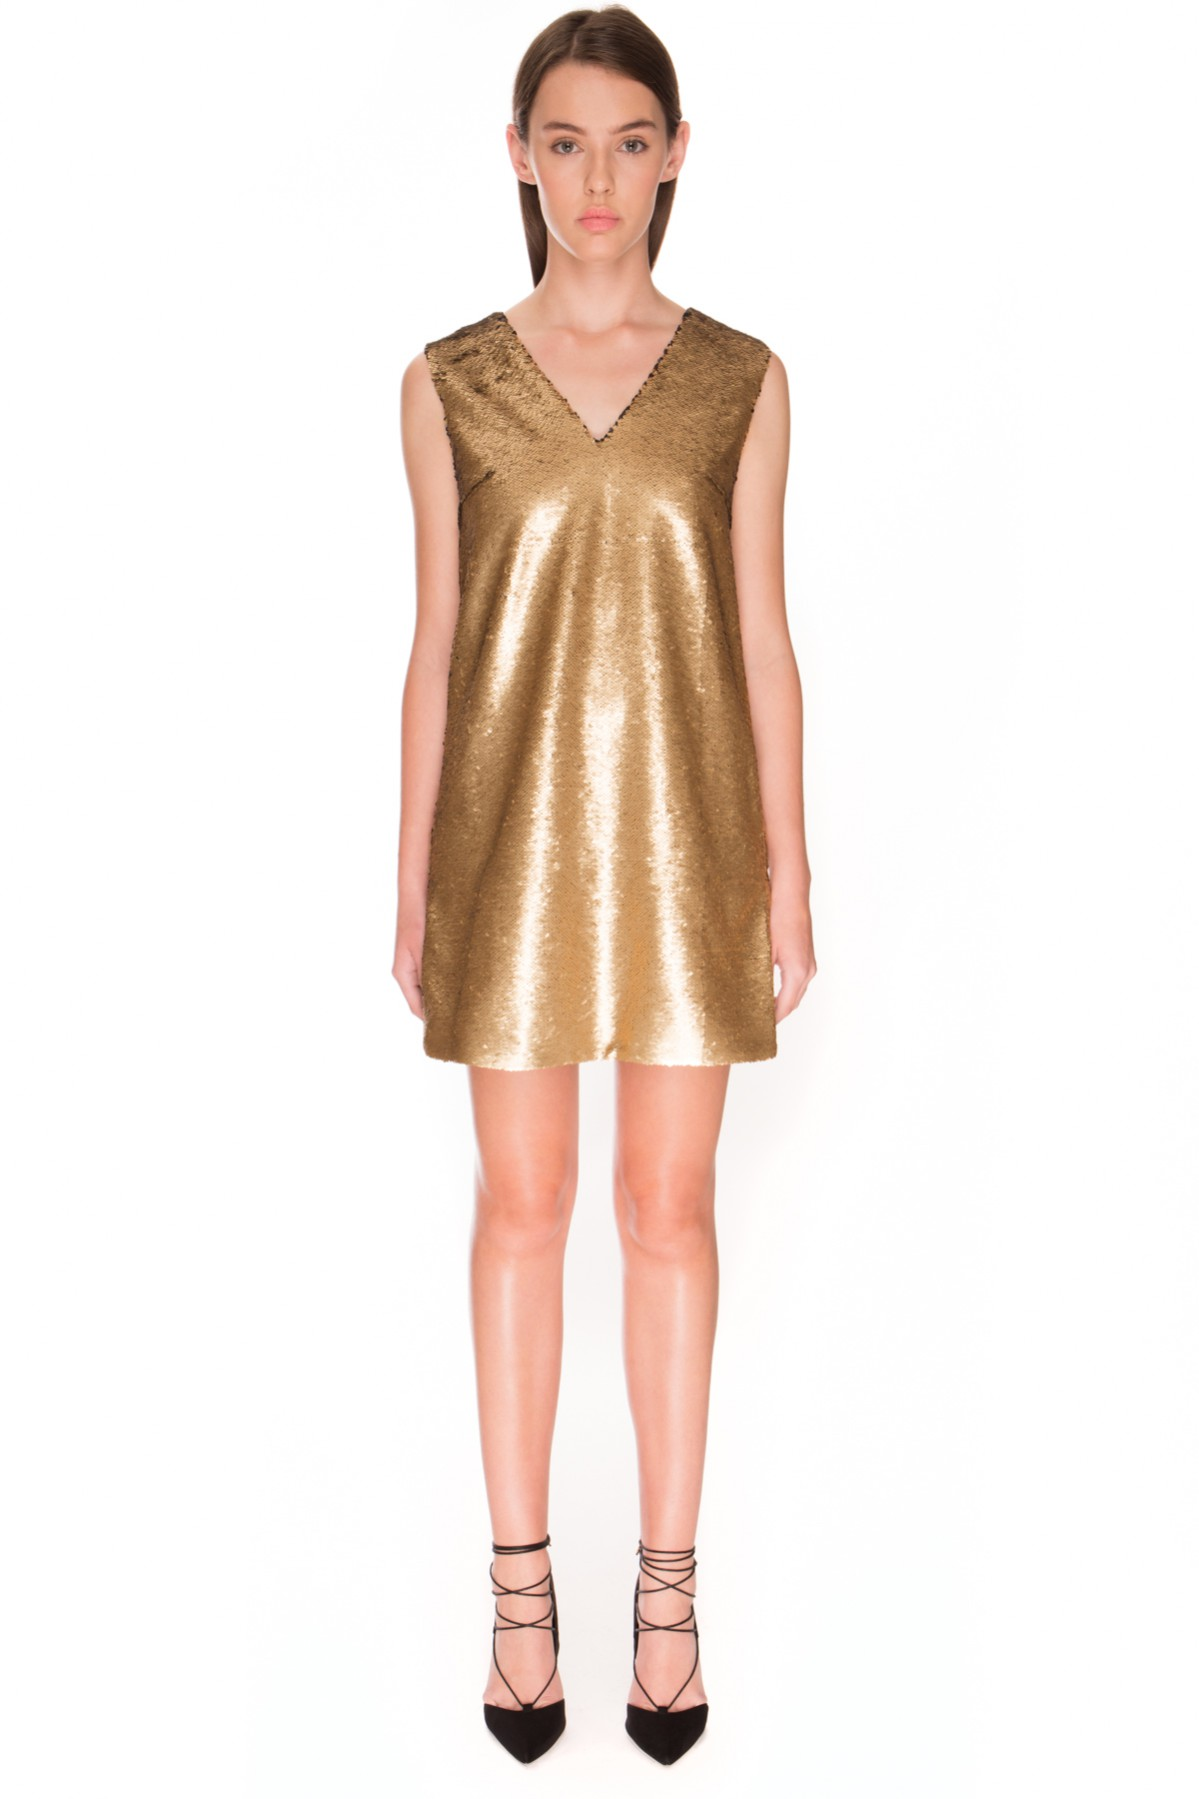 10 Best Gold Dresses For New Years Eve 2019 | Become Chic